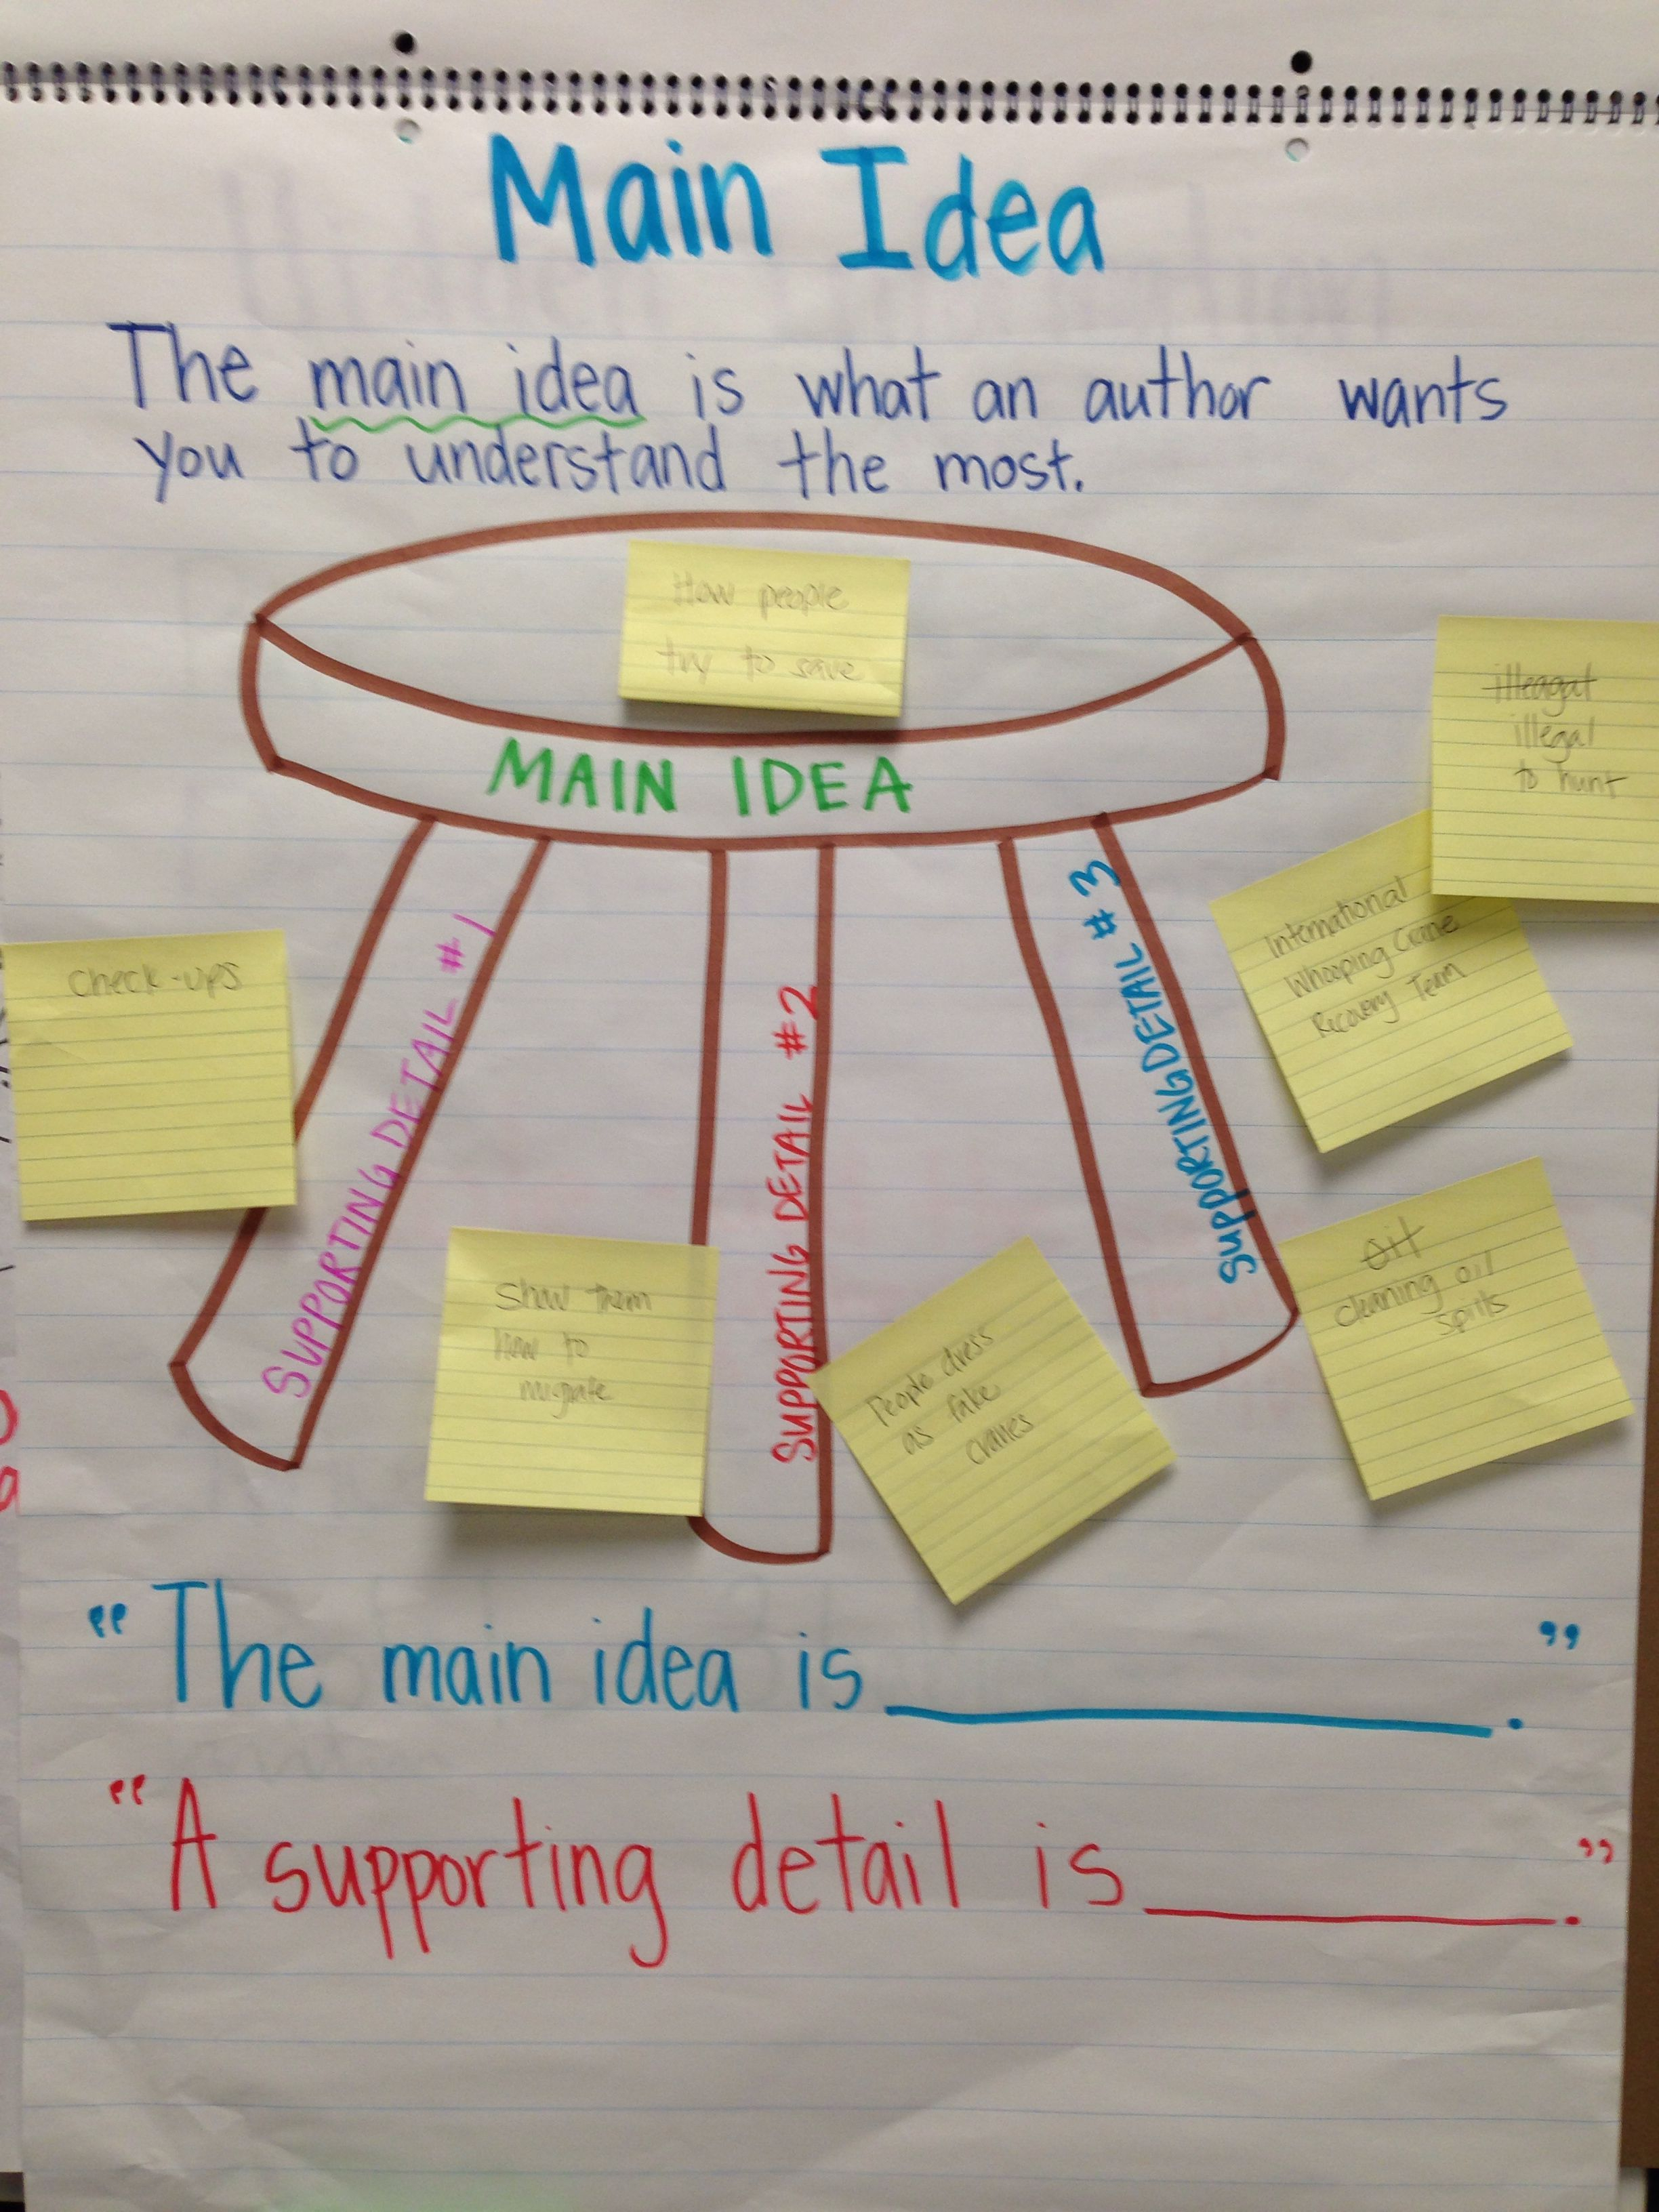 10 Perfect Main Idea Activities High School anchor chart about main idea and supporting details for nonfiction 2020